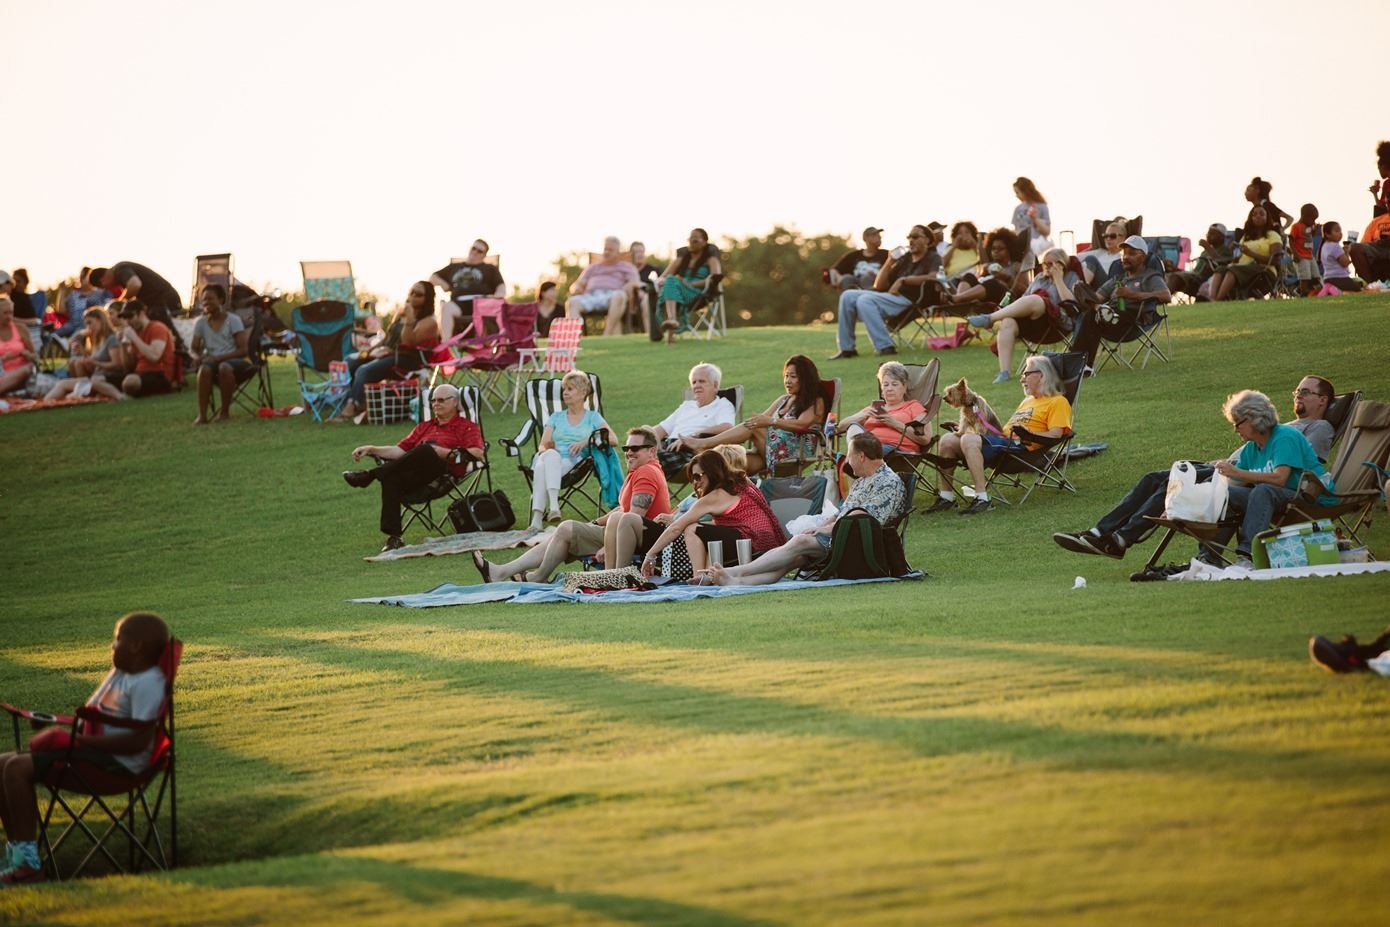 People Sitting in Camping Chairs at Valley Ridge Park